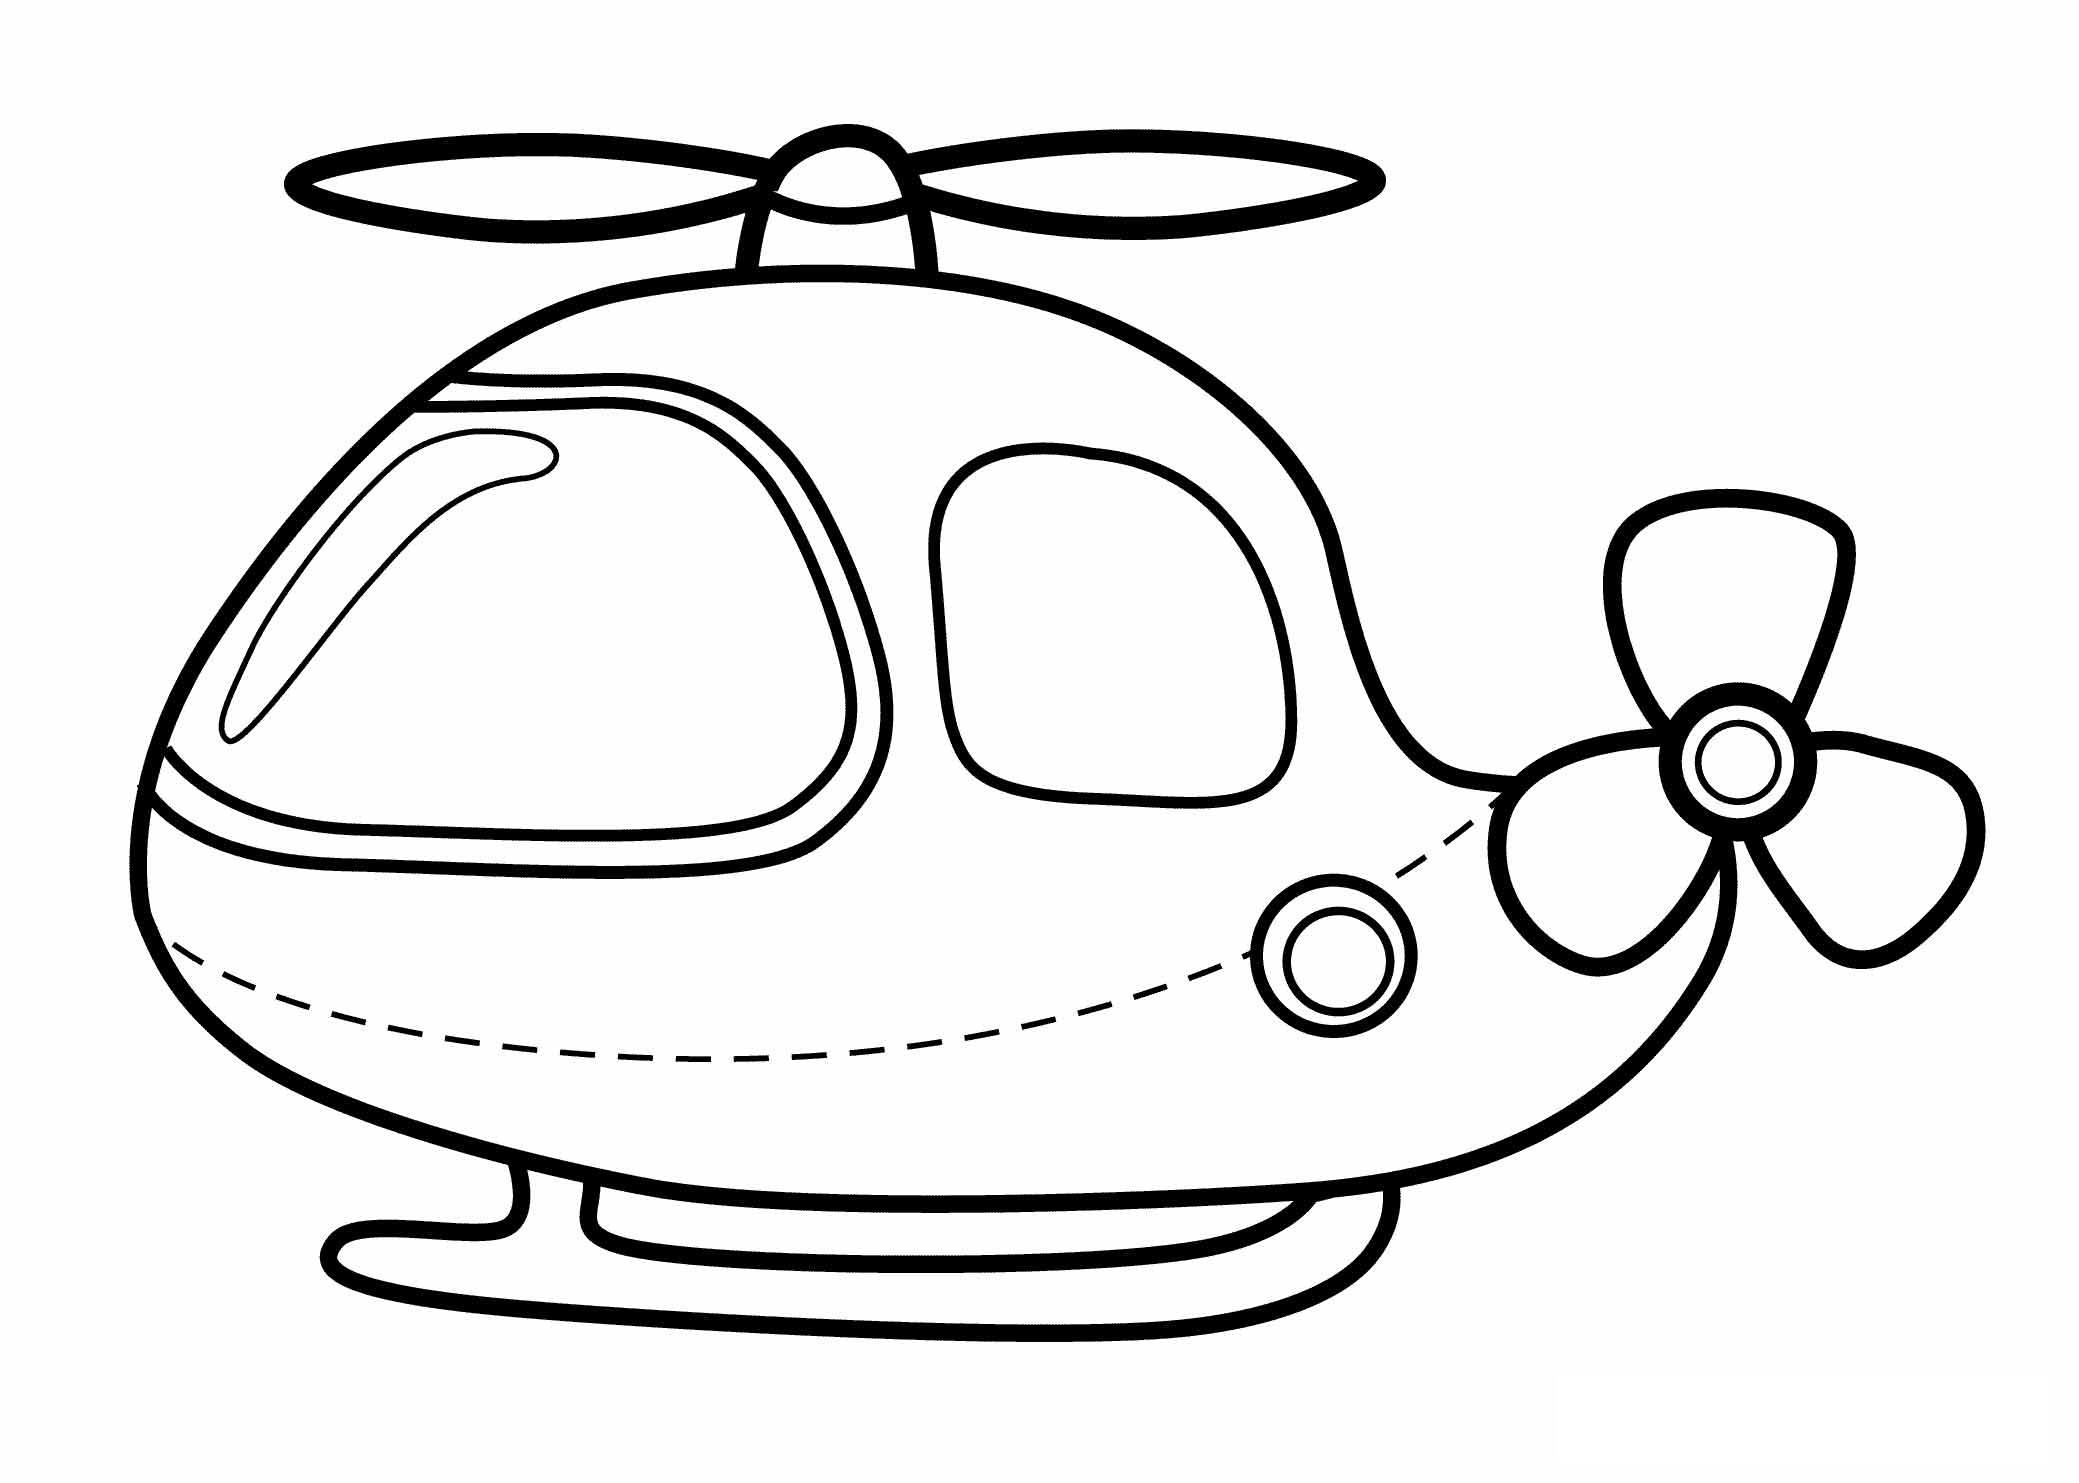 coloring pages helicopter - photo#25